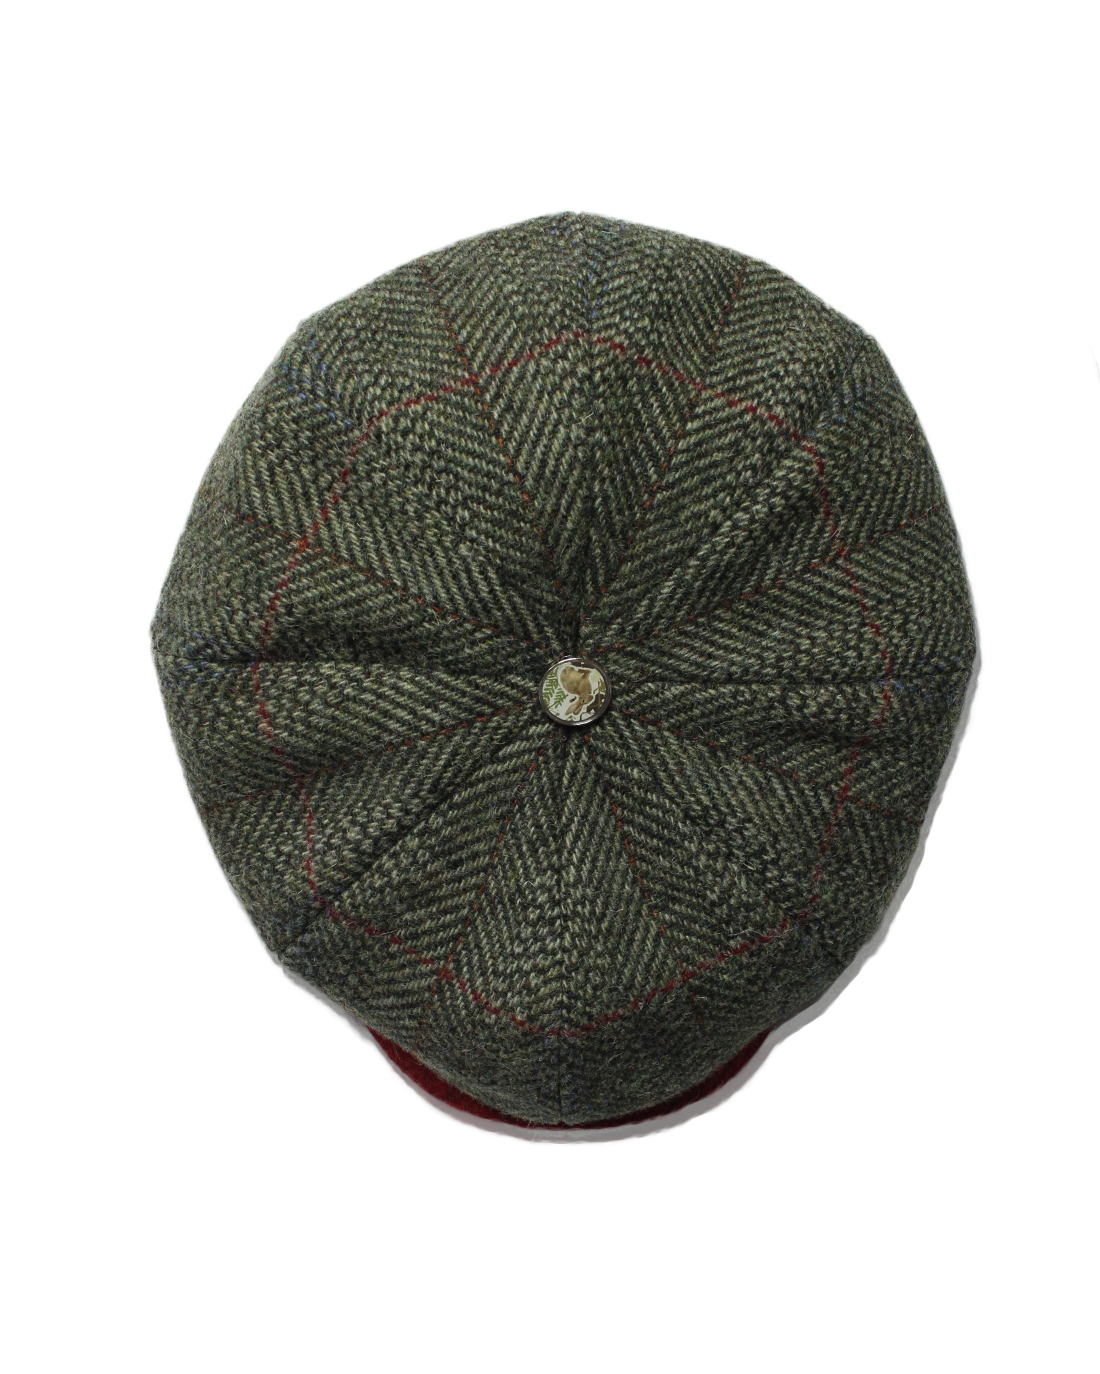 The ROTW Baker Cap - Holland Esquire